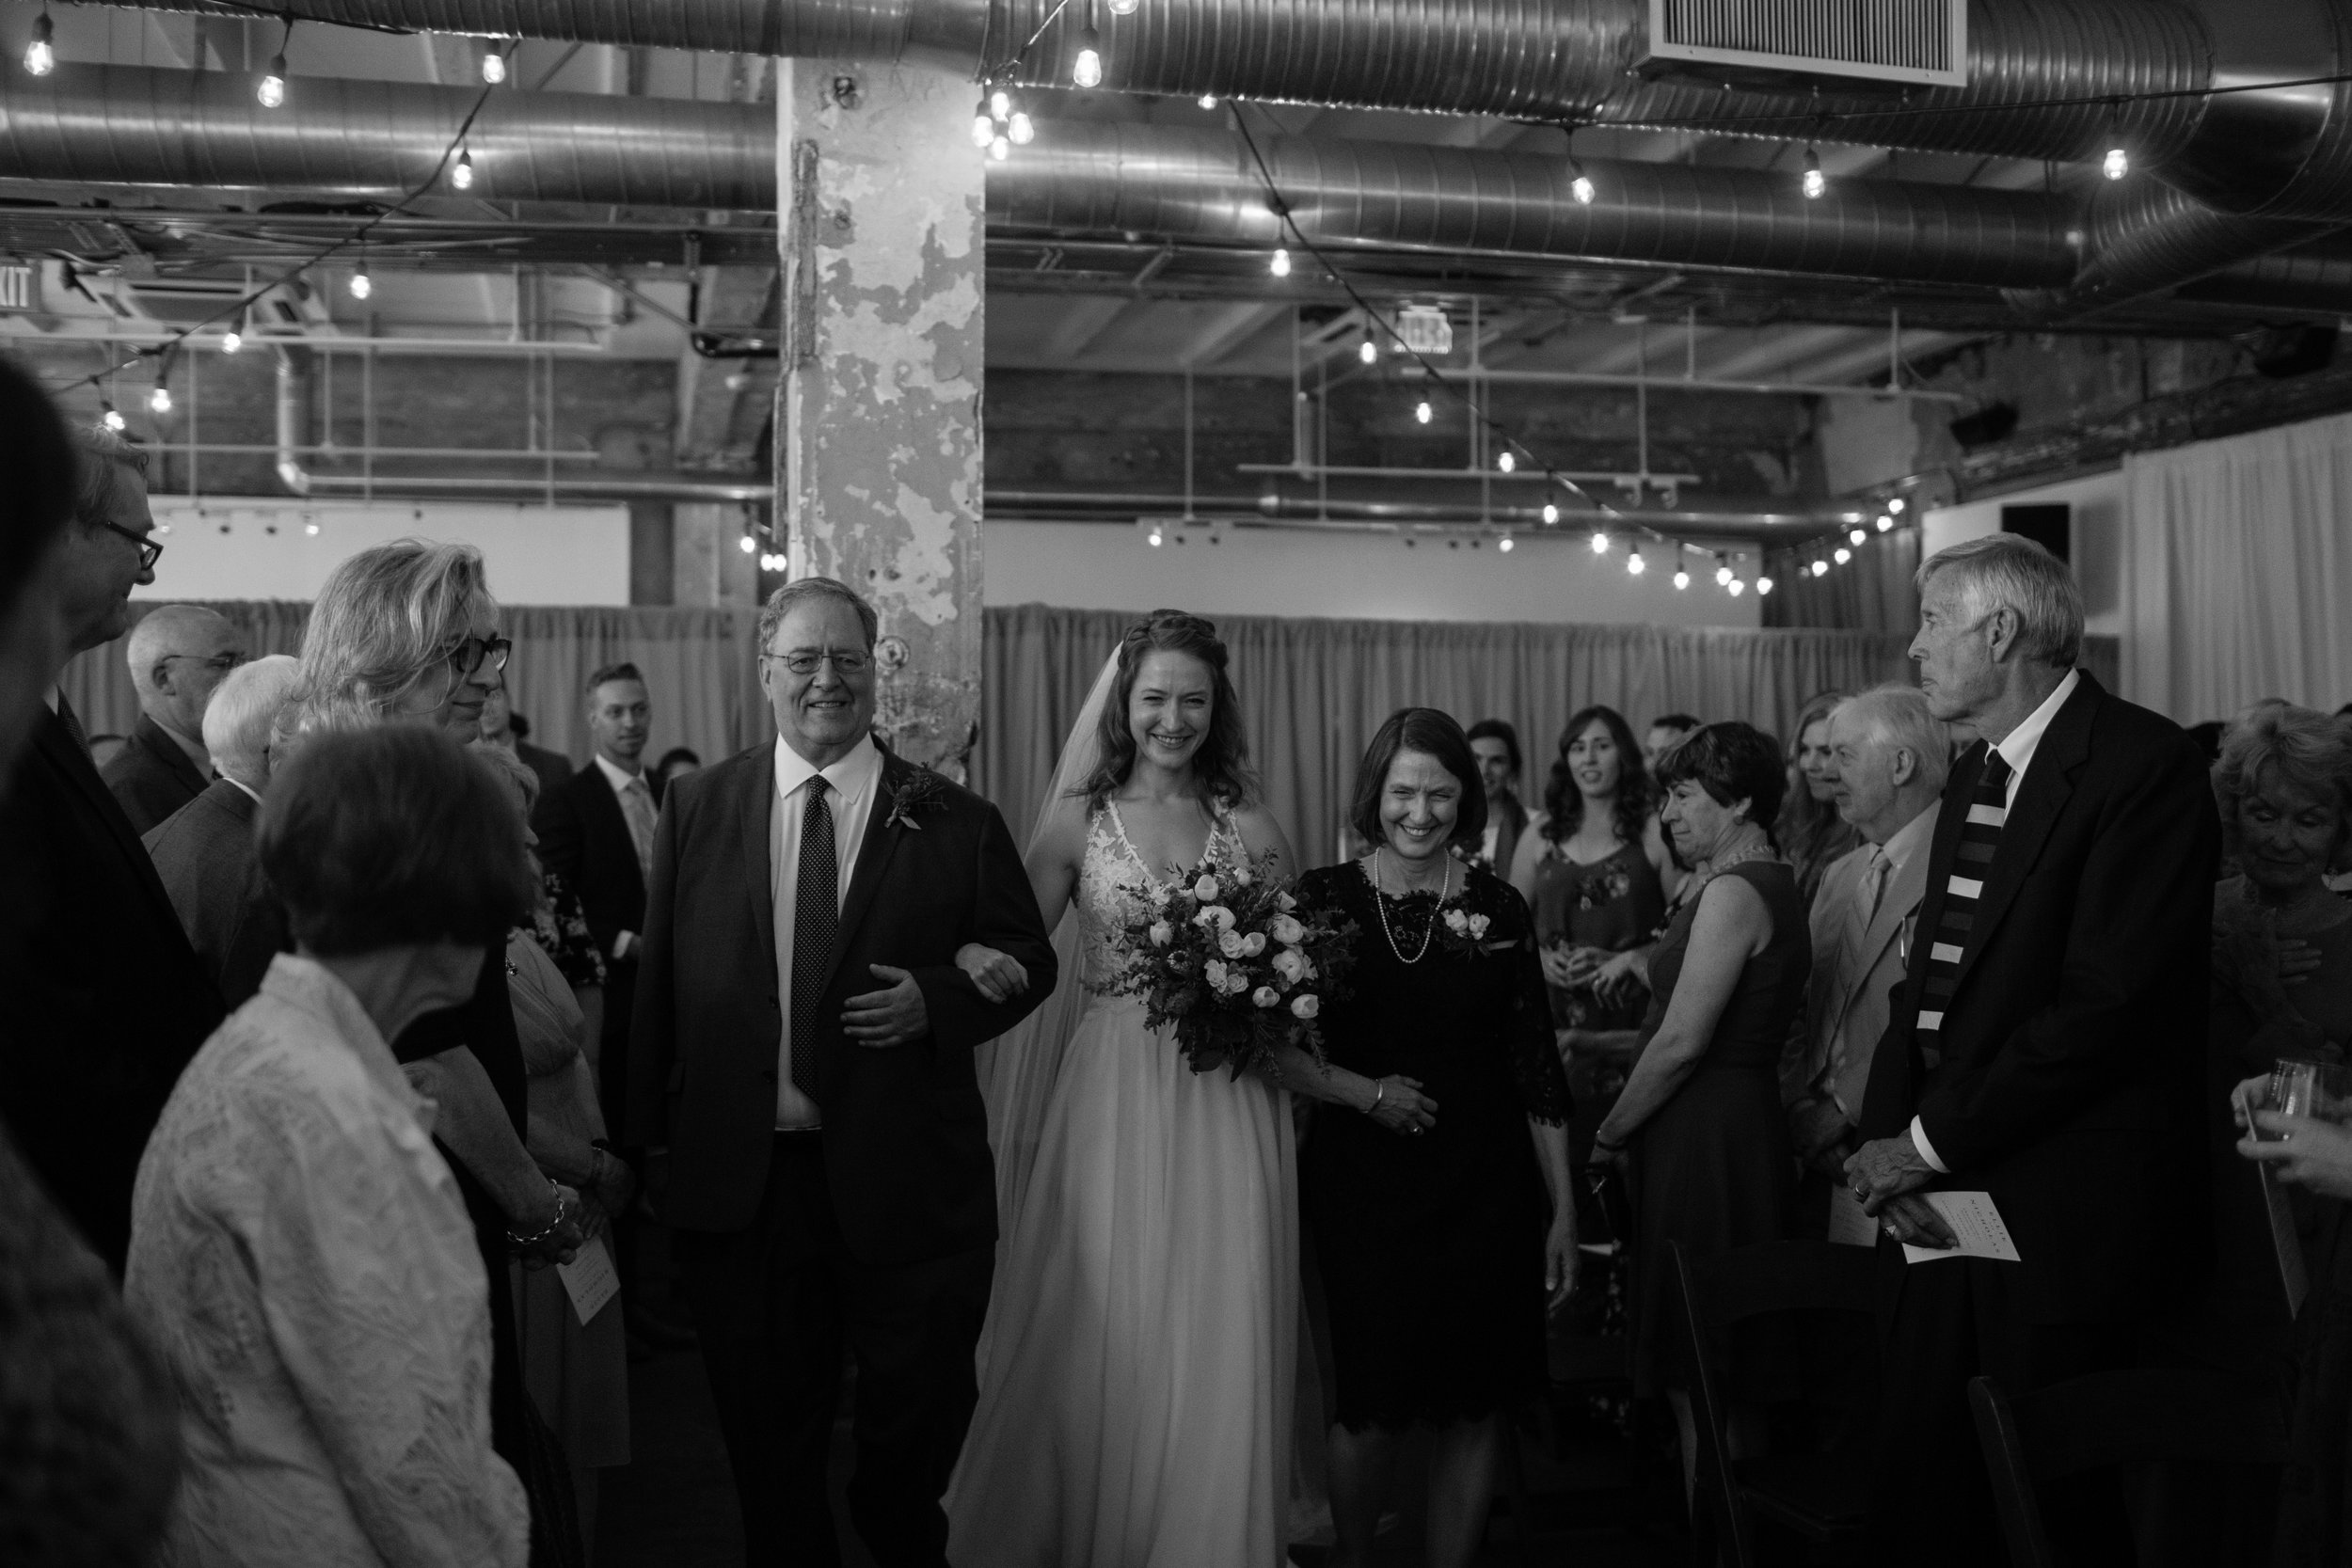 longview gallery wedding